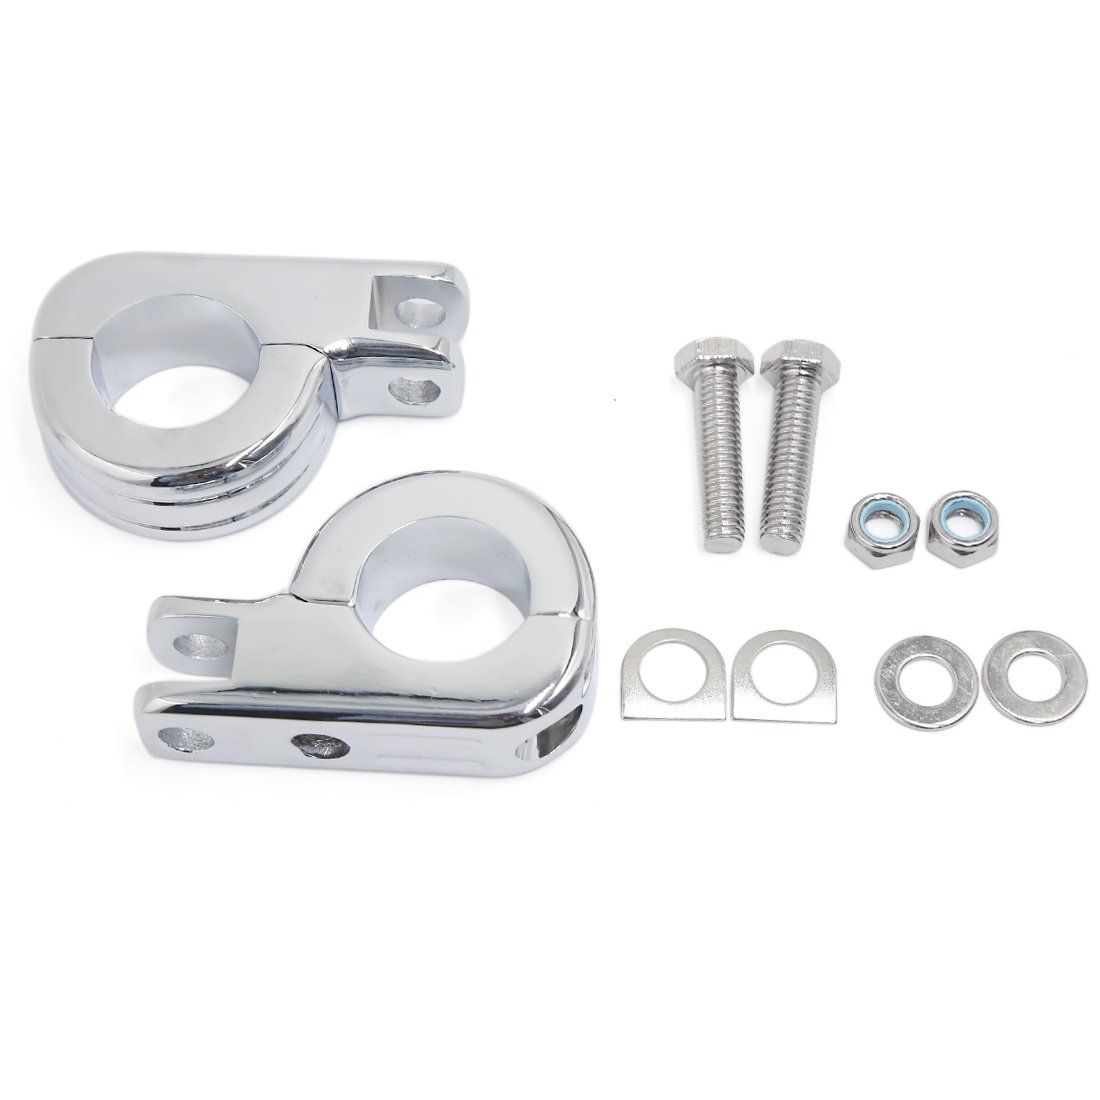 sourcingmap 1.25' 1 1/4' Chrome Highway Offset P Clamp Footpegs Mount Kit a16080400ux0055